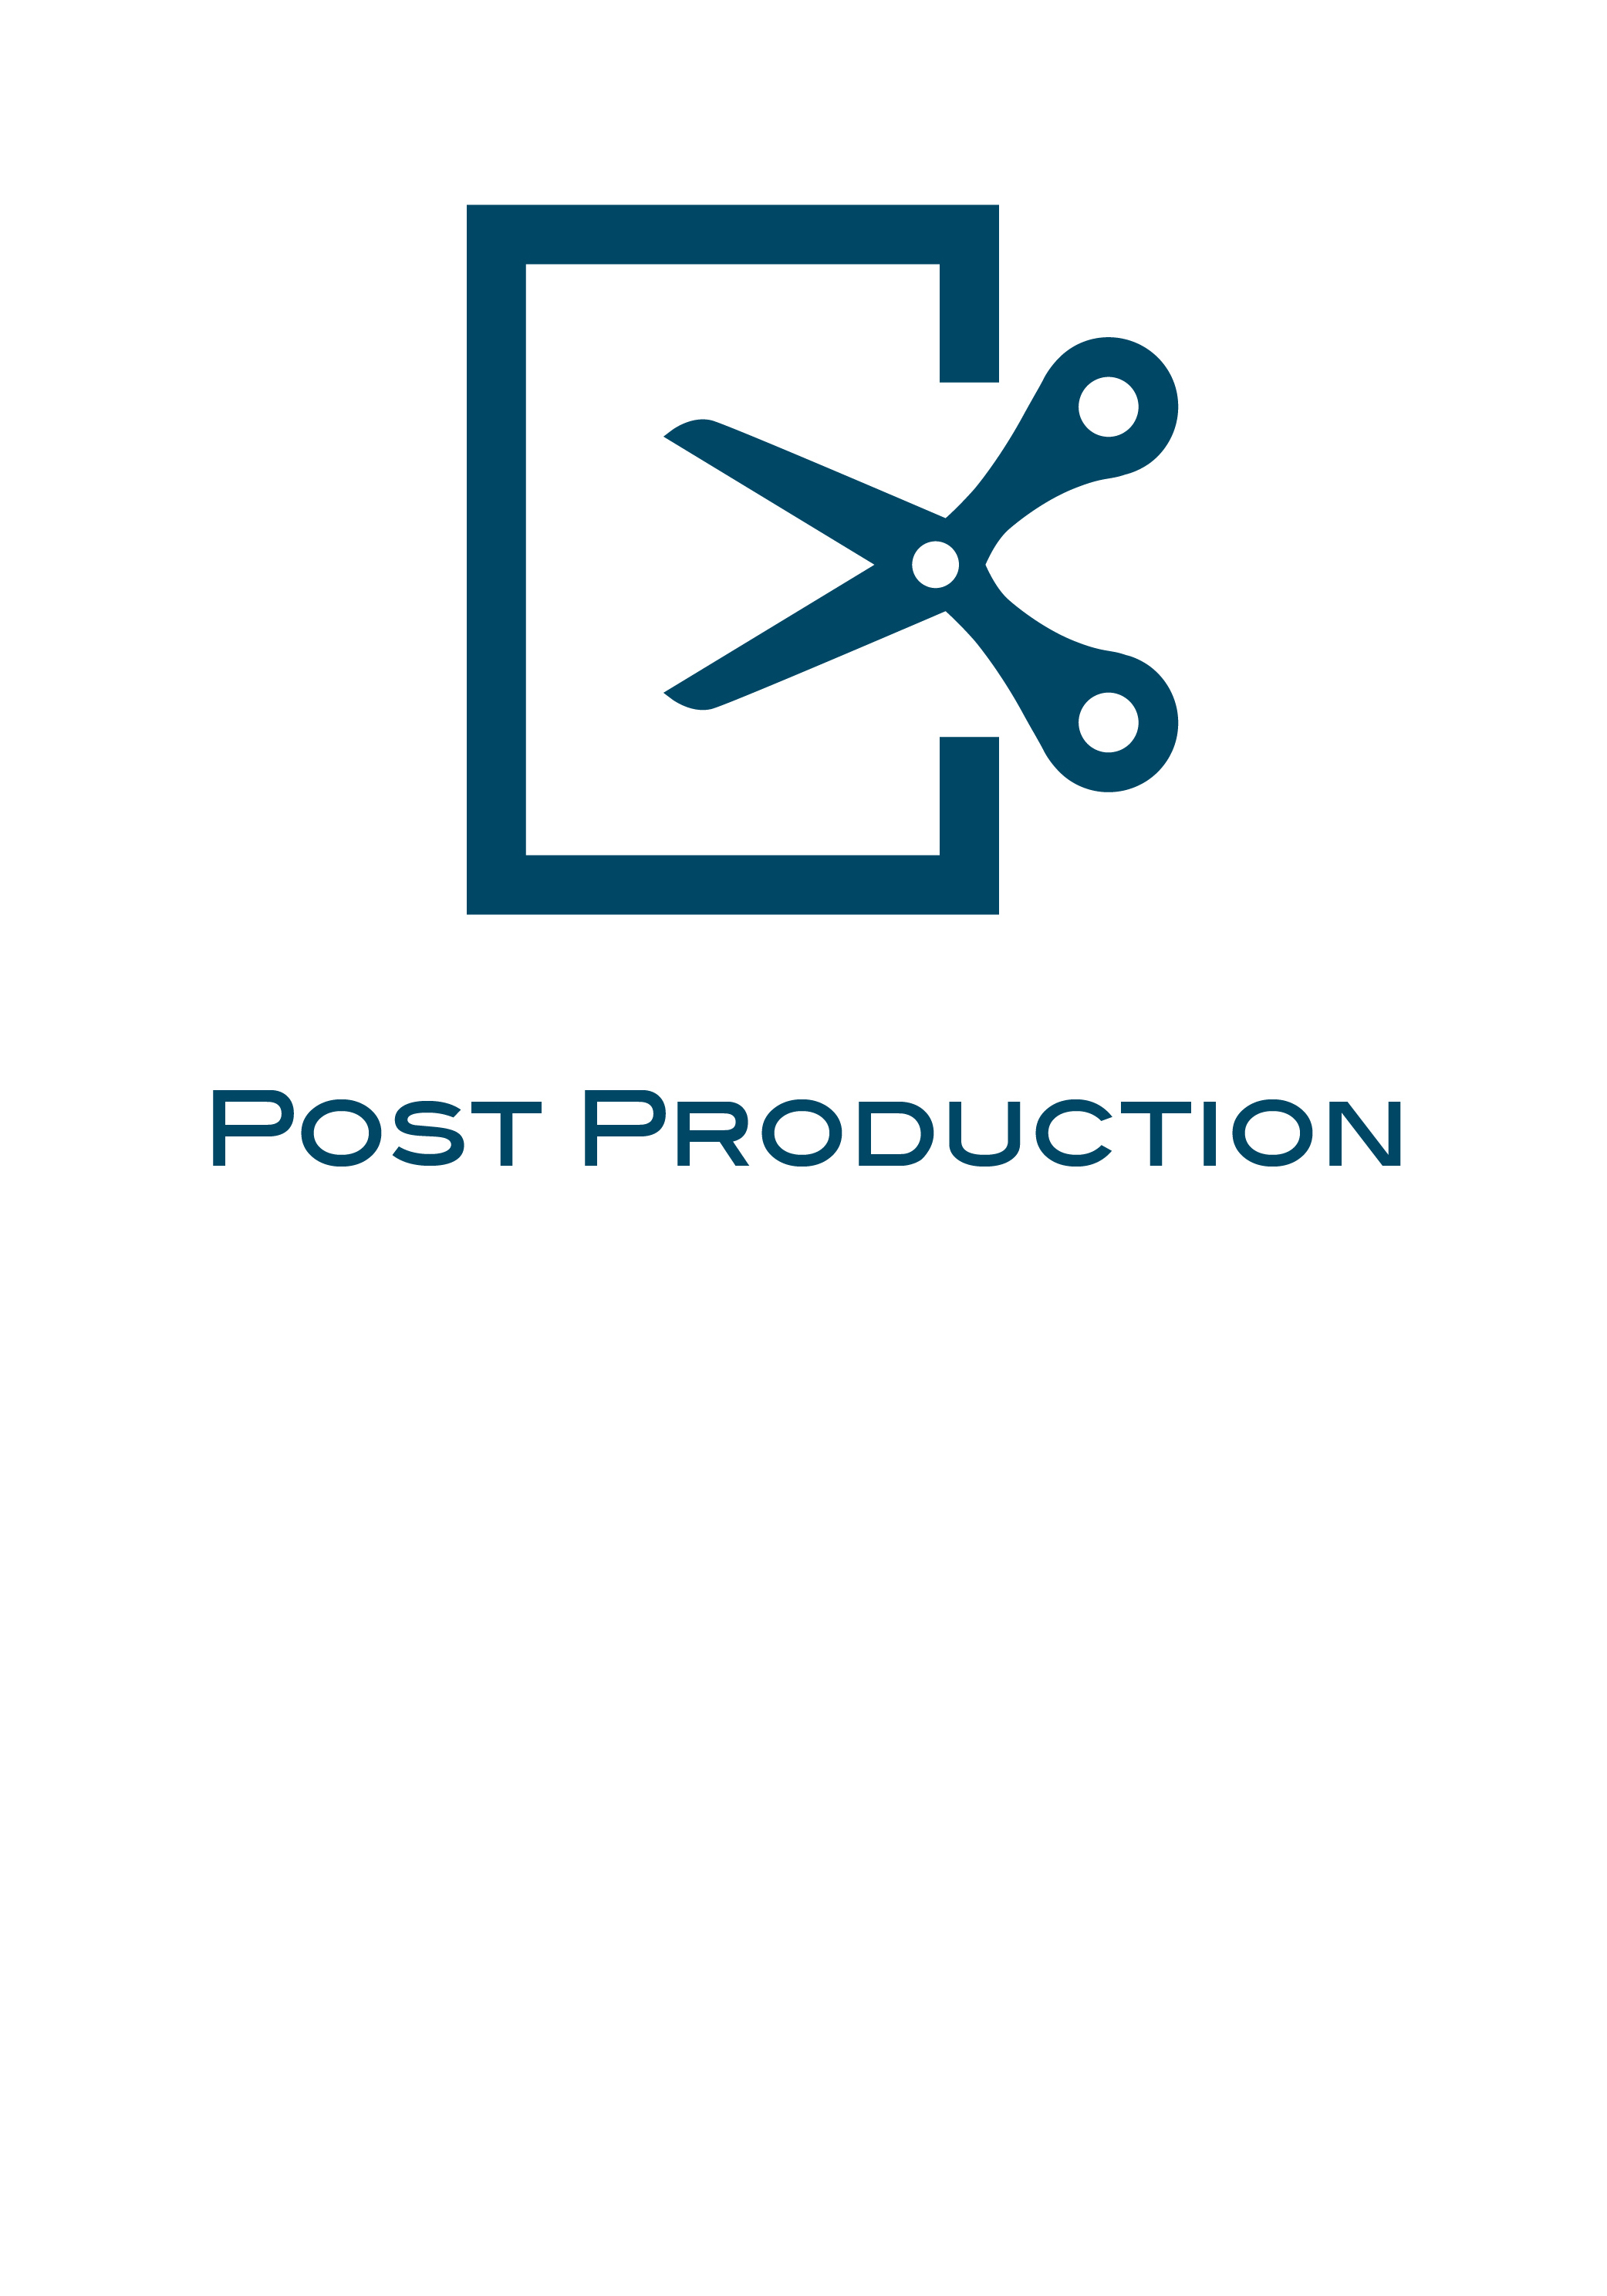 We offer a full range of post-production services, including editing, soundtrack, sound design and mixing, colour grading, compositing and video encoding.